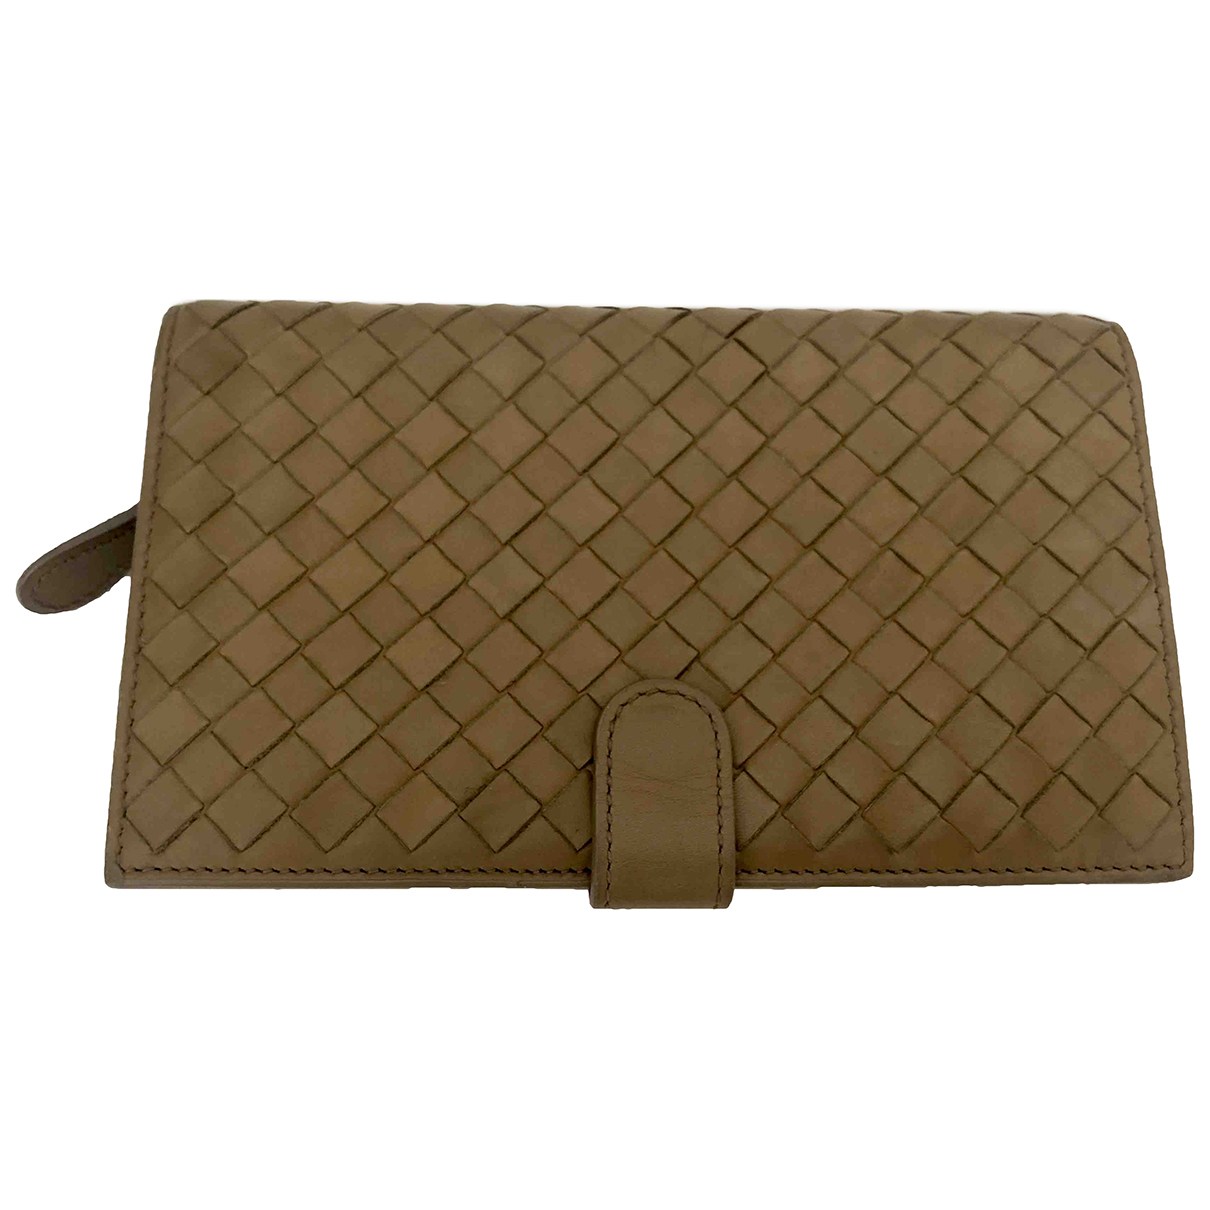 Bottega Veneta Intrecciato Beige Leather wallet for Women \N